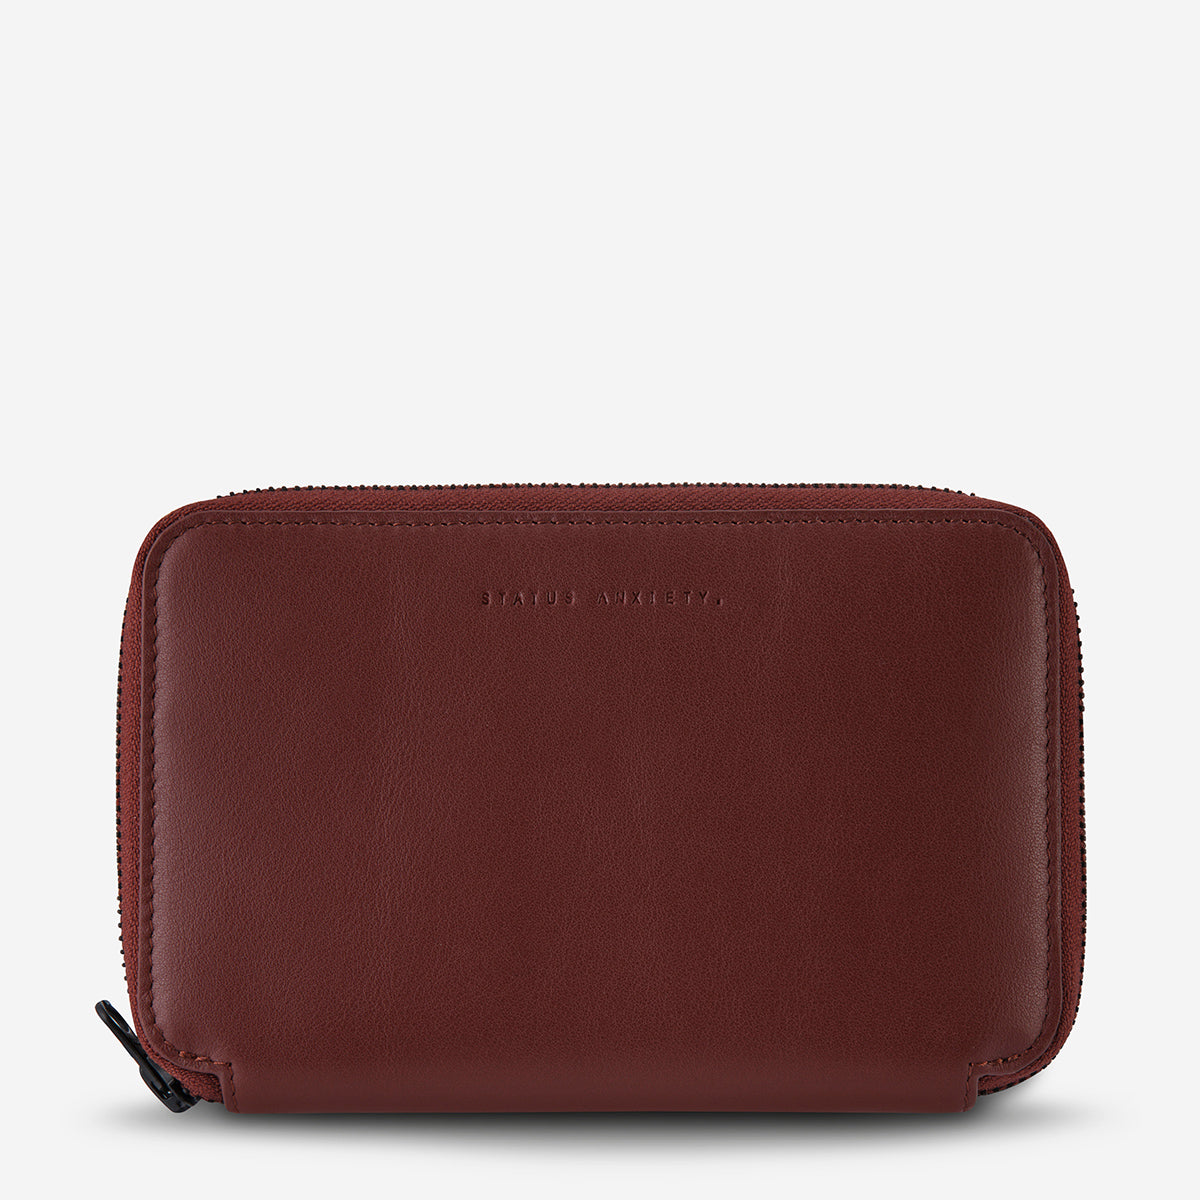 Status Anxiety Leather Travel Wallet Vow - Cognac